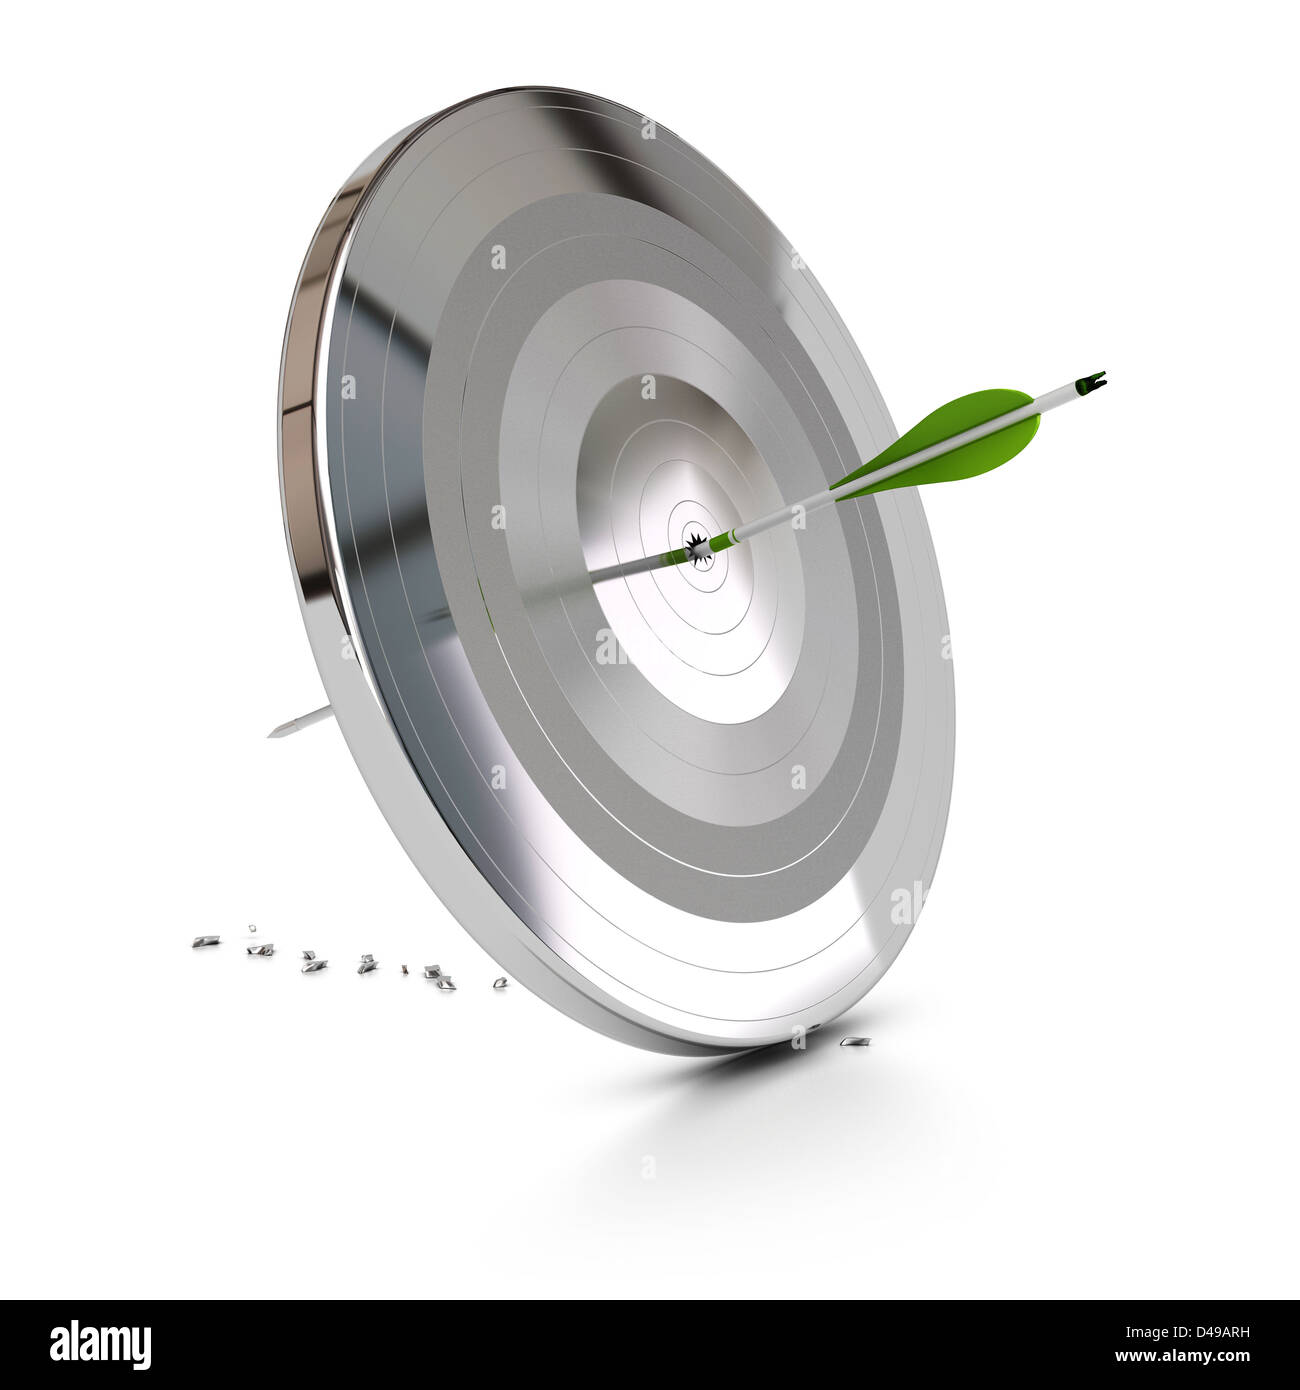 one green arrow pierce a metal target over white background, symbol of overcome difficulties - Stock Image